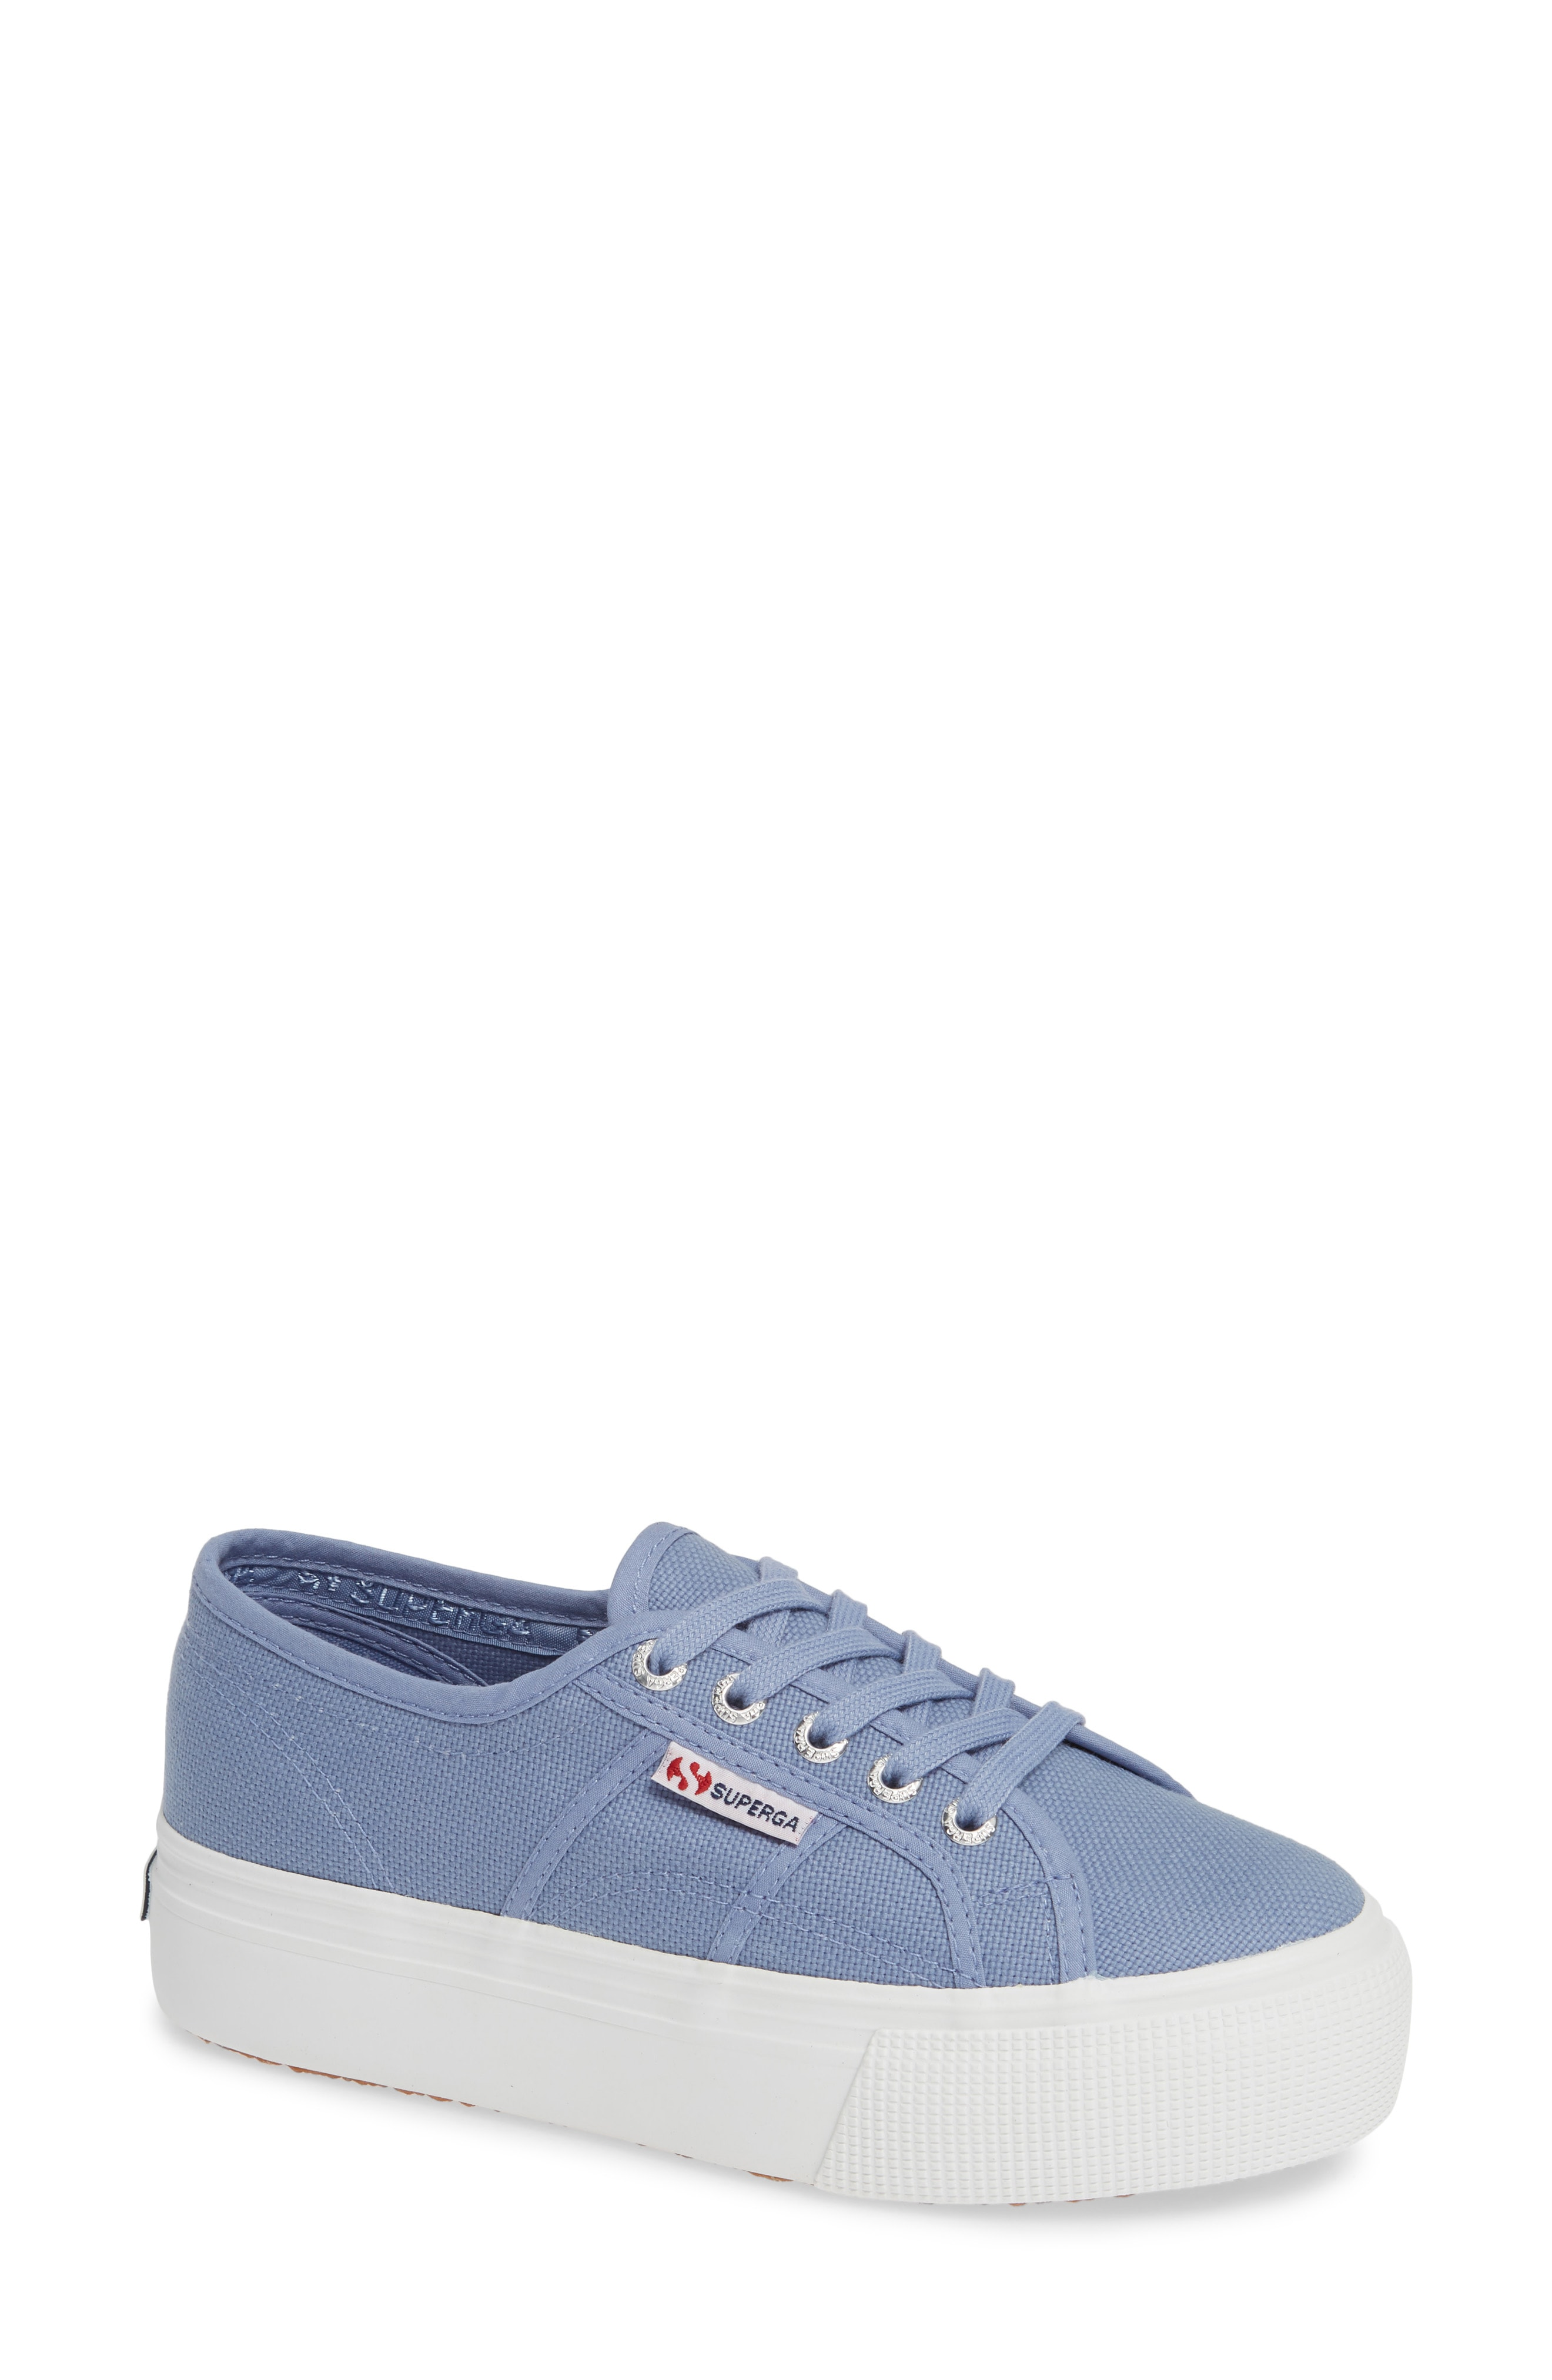 Superga Shoes -Sneakers and more